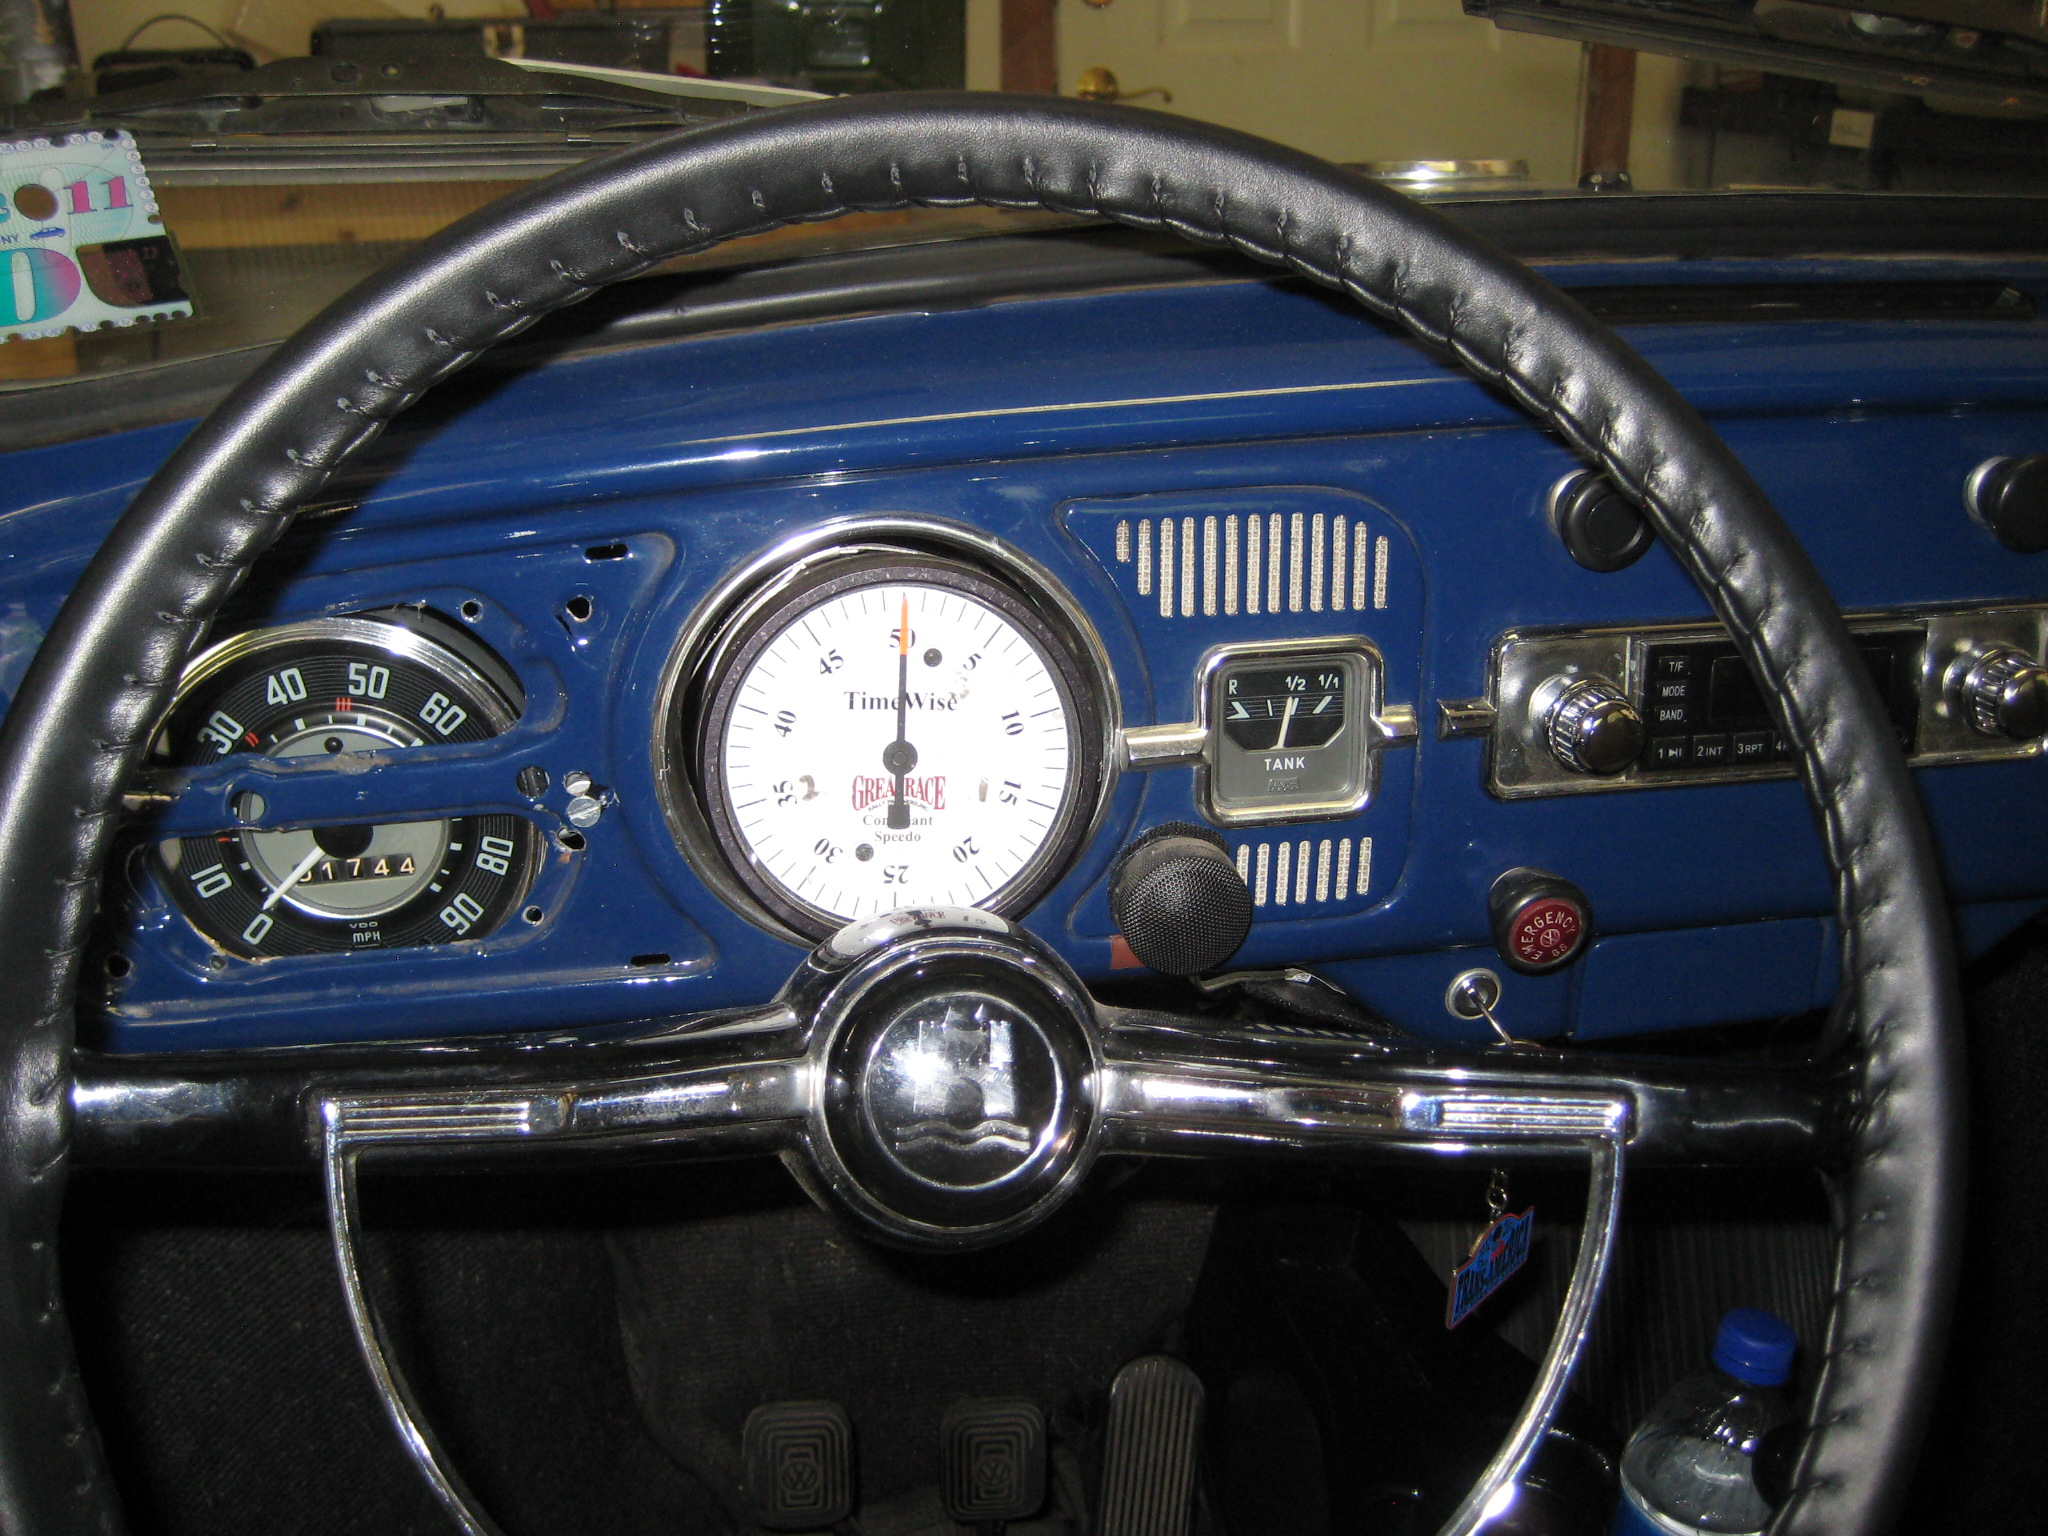 Dashboard with TimeWise speedometer]